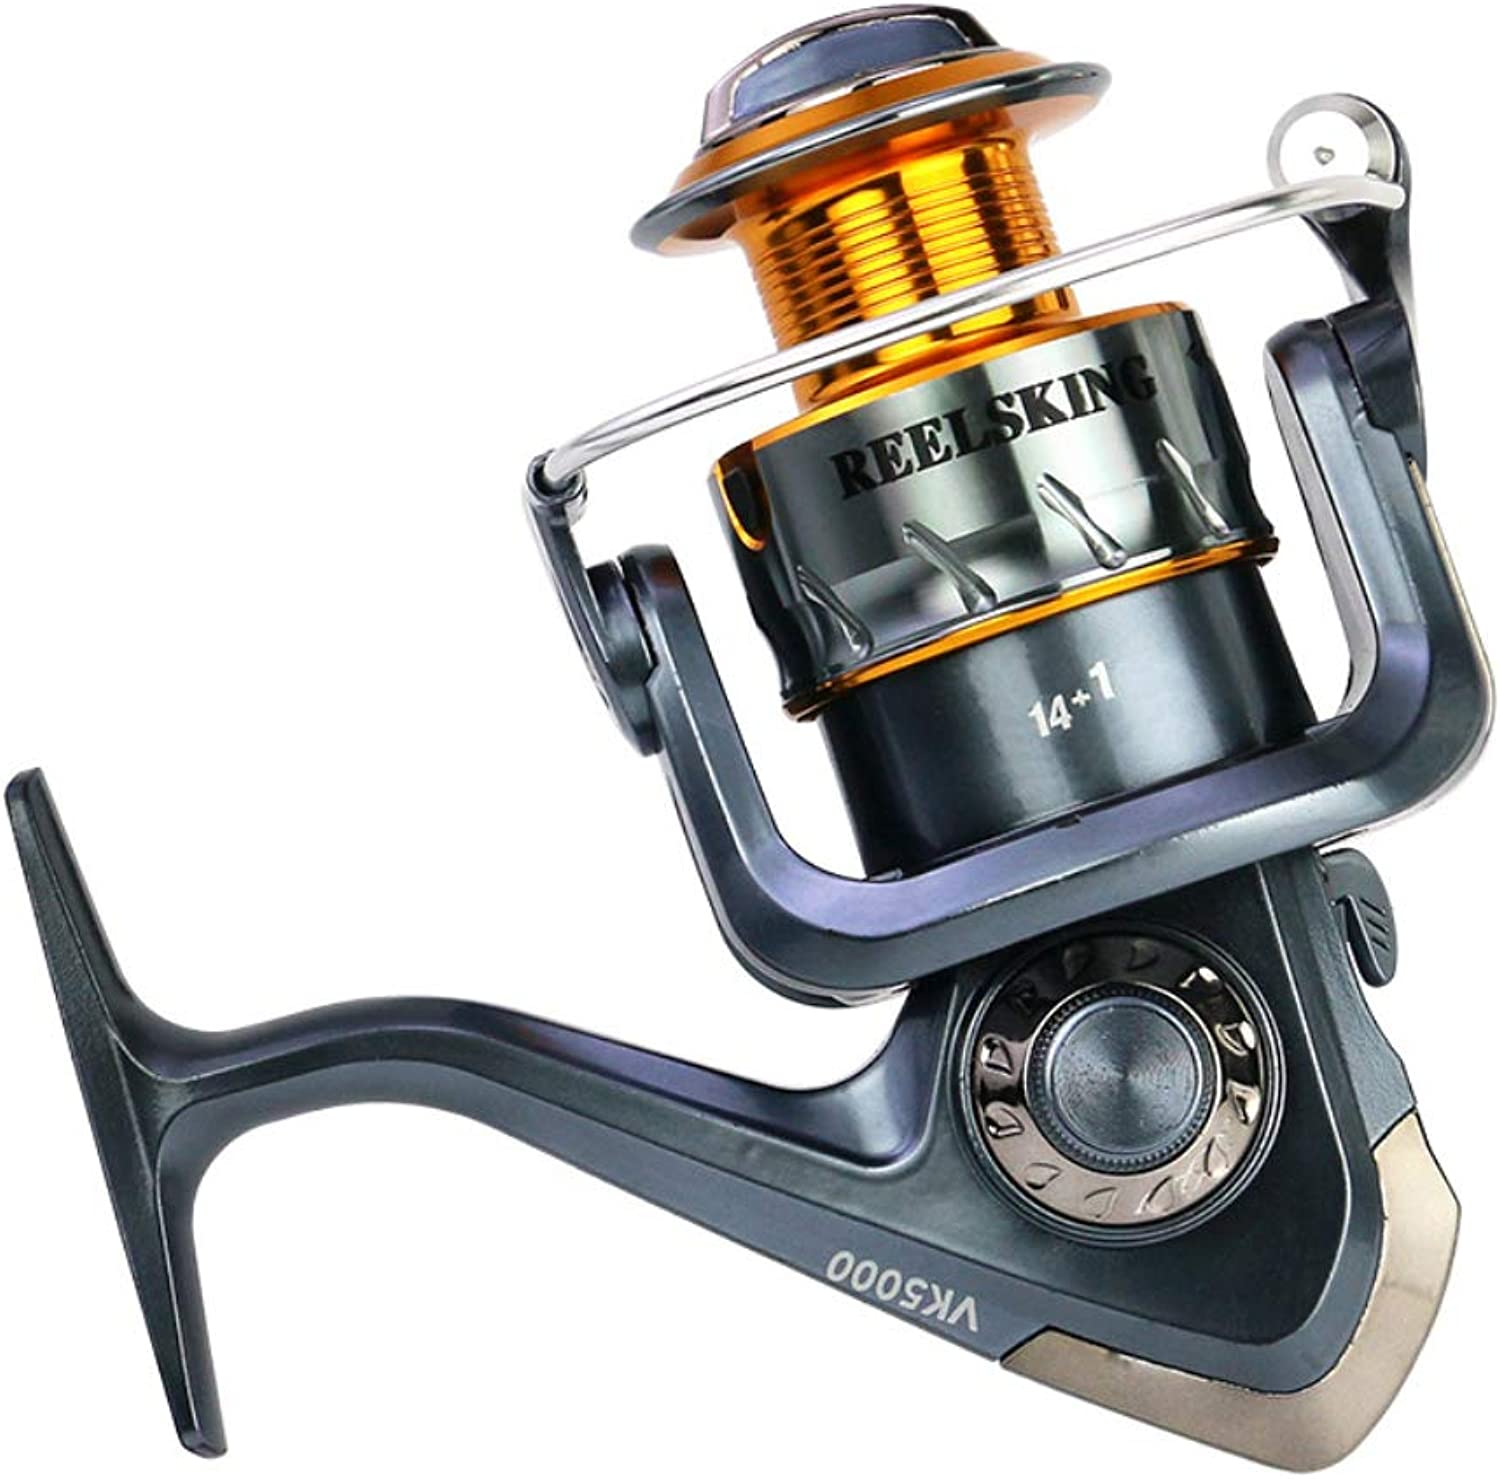 Fishing Reel with Left Right Interchangeable Collapsible Handle 5.5 1 Ratio Spinning Fishing Reel Saltwater Freshwater Fish Reels   30007000Series Reel,MH4000